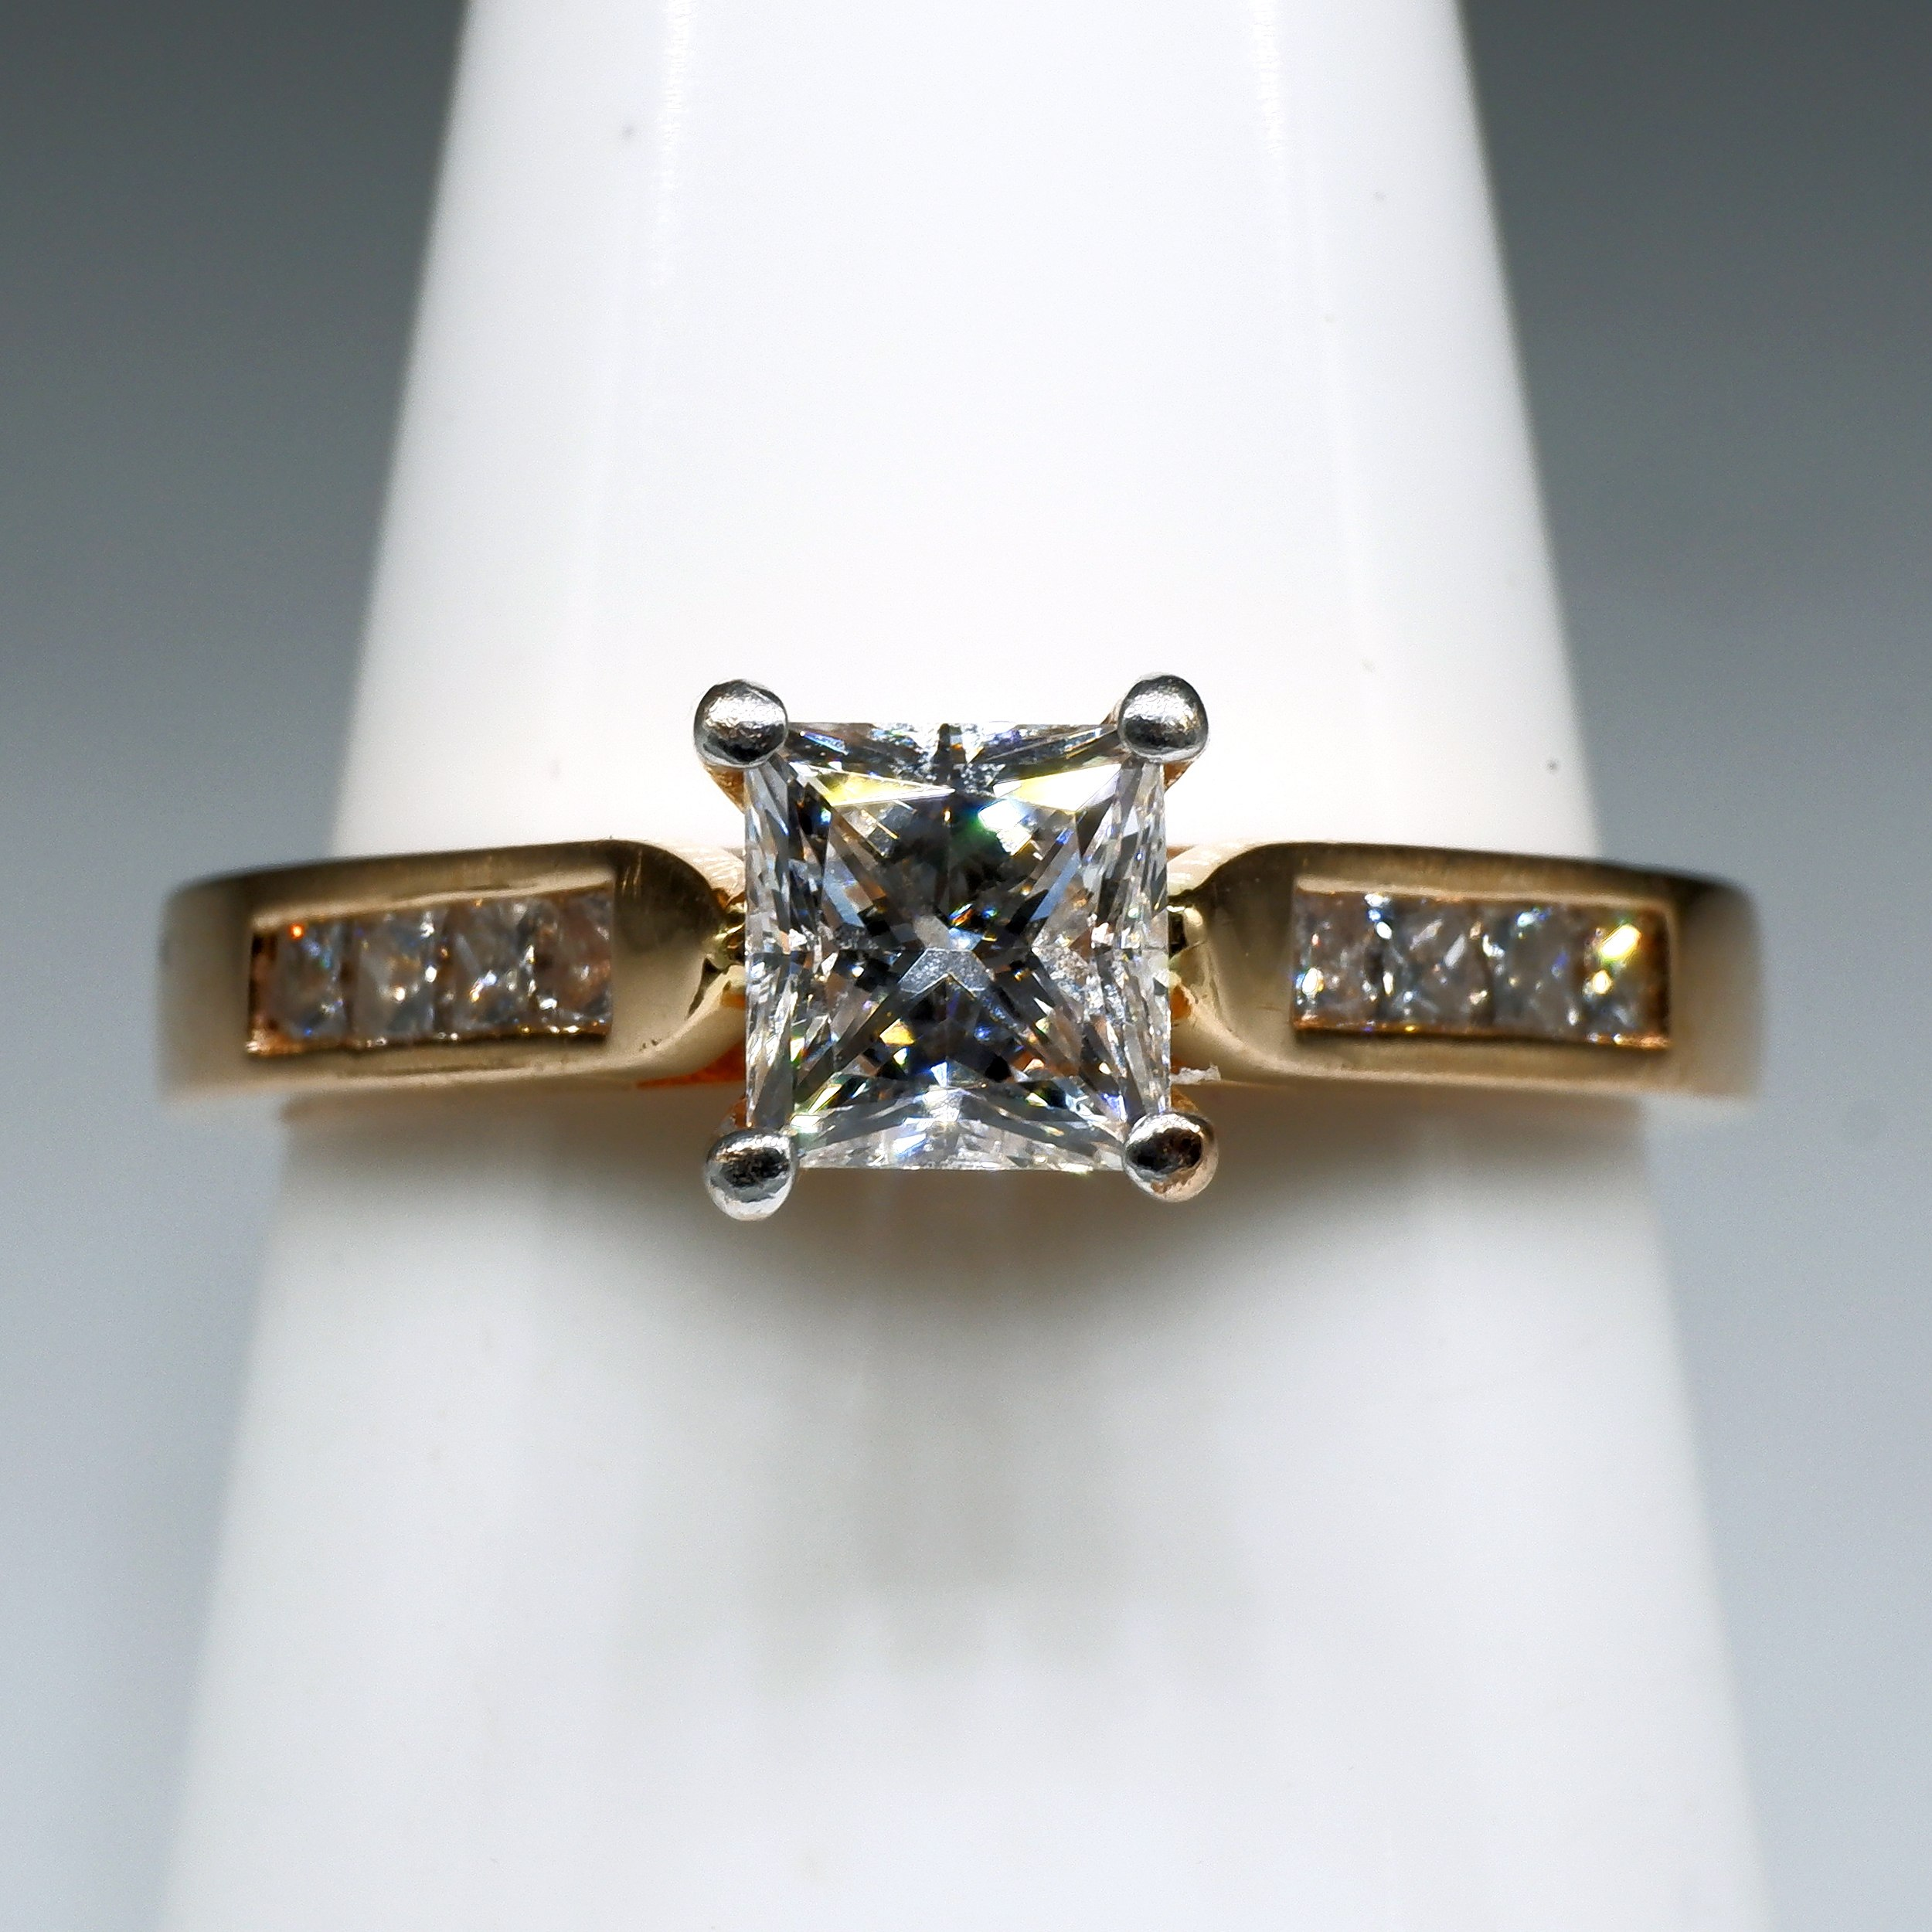 '18ct Rose Gold Ring with Princess Cut Diamond 0.51ct (G VS2) with Four Princess Cut Diamonds on Either Side'